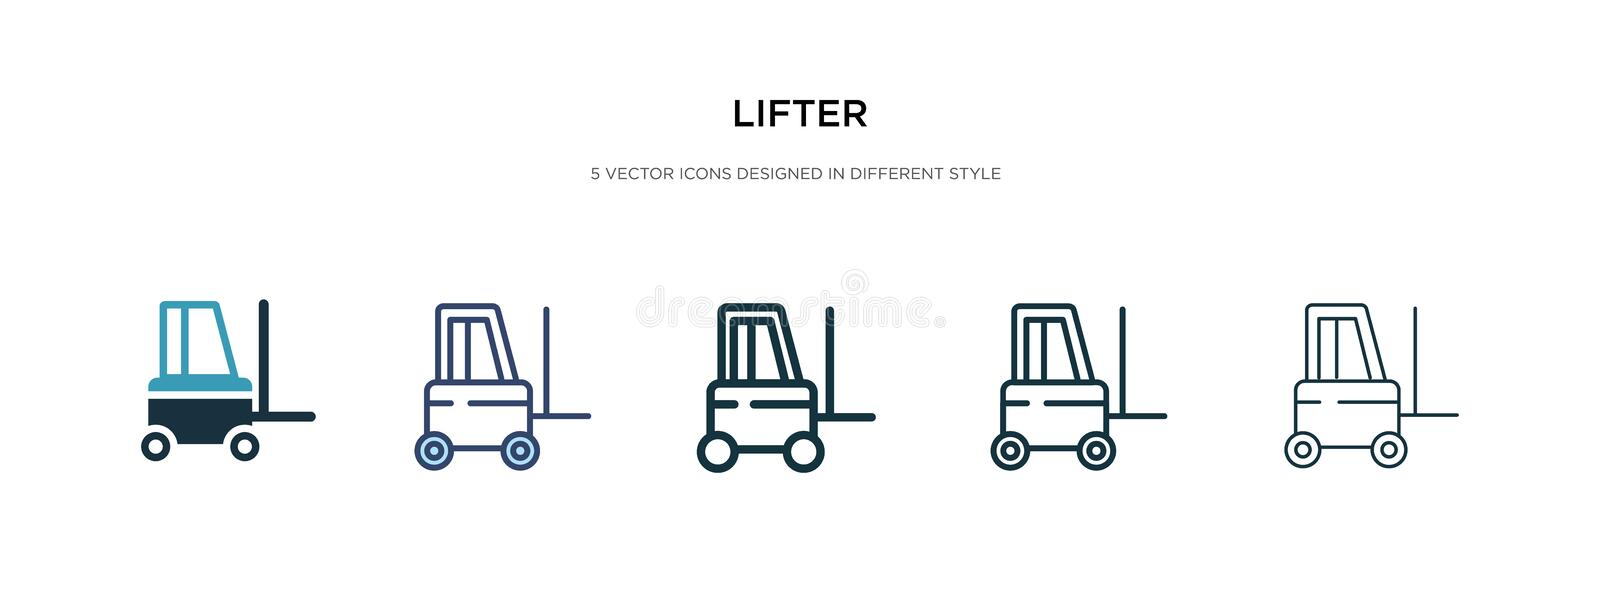 Lifter icon in different style vector illustration. two colored and black lifter vector icons designed in filled, outline, line stock illustration